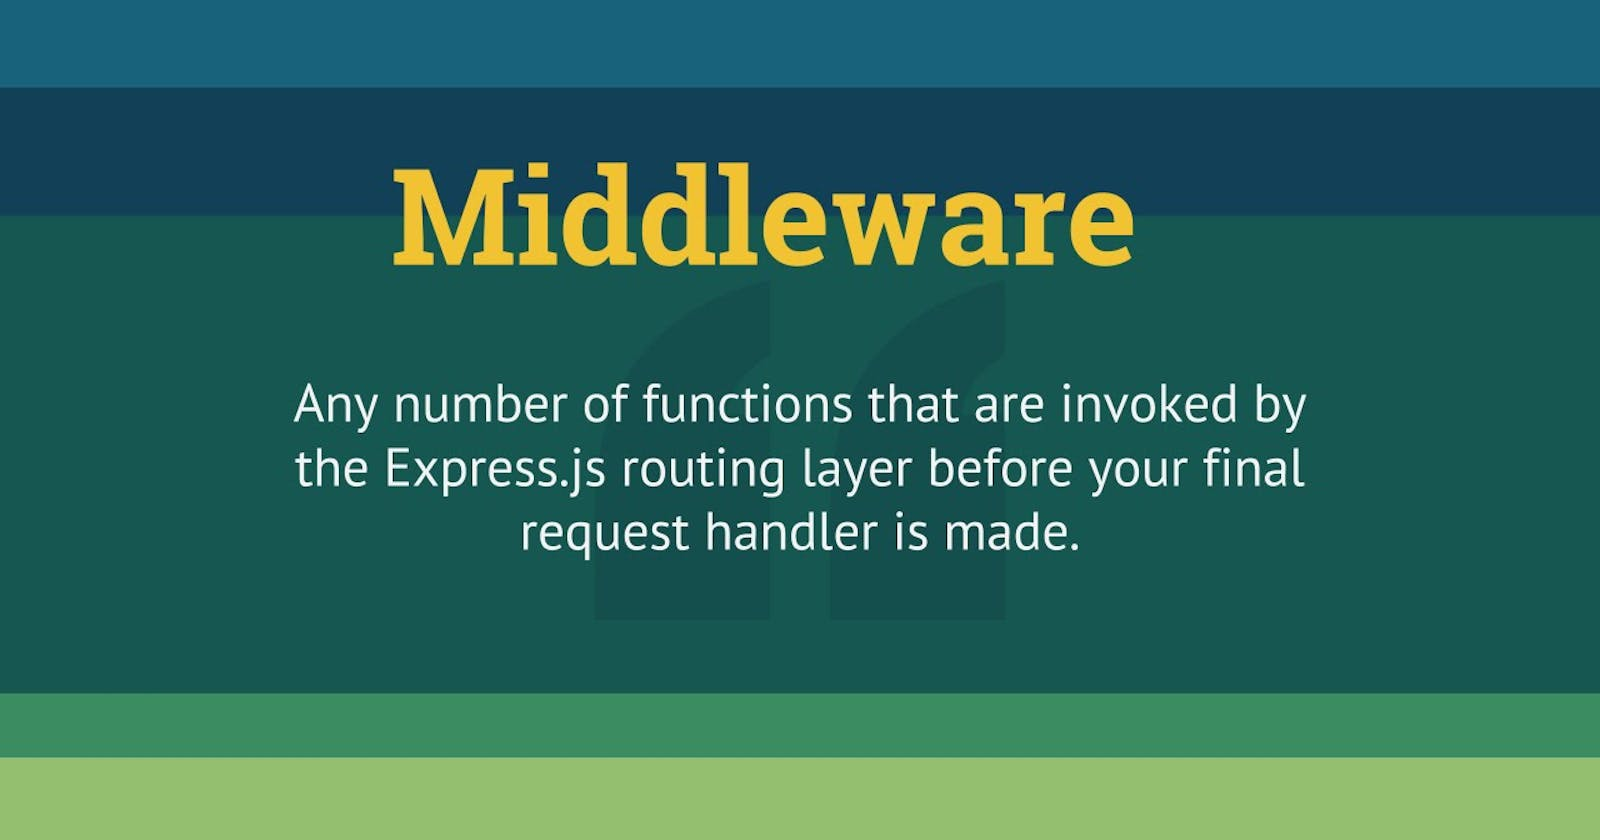 Middlewares in Express JS